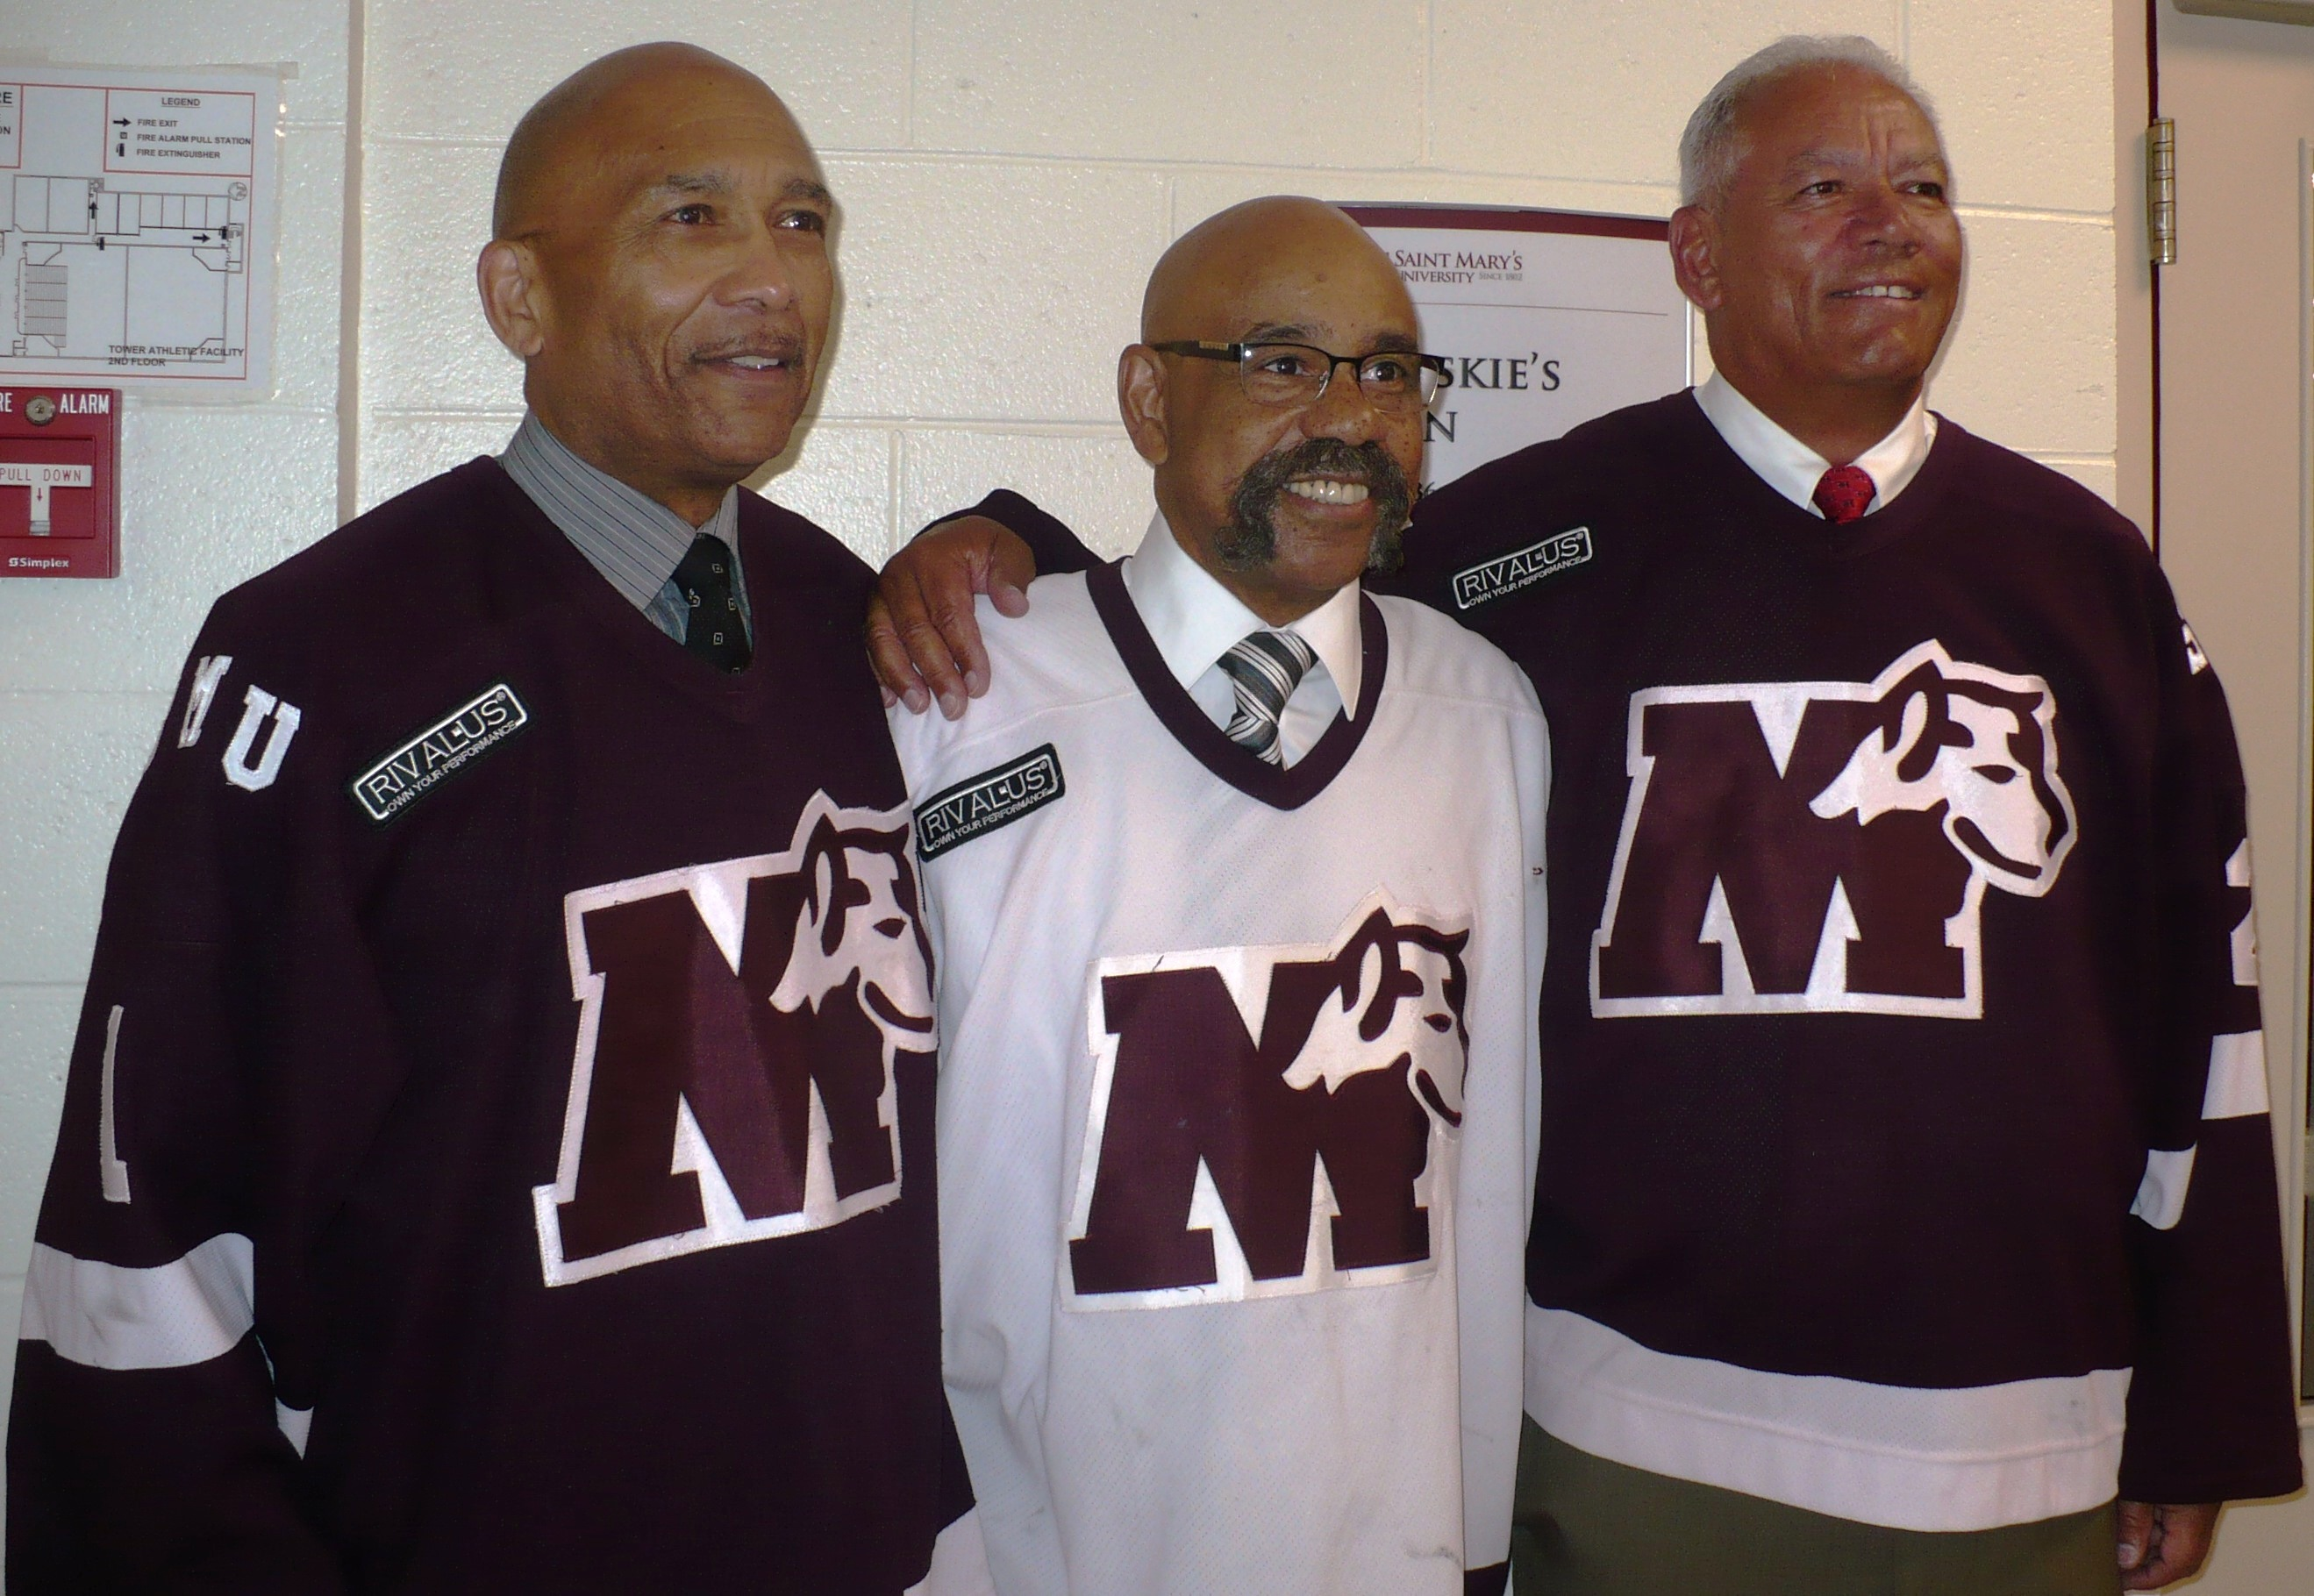 Saint Mary's Players Make Hockey History